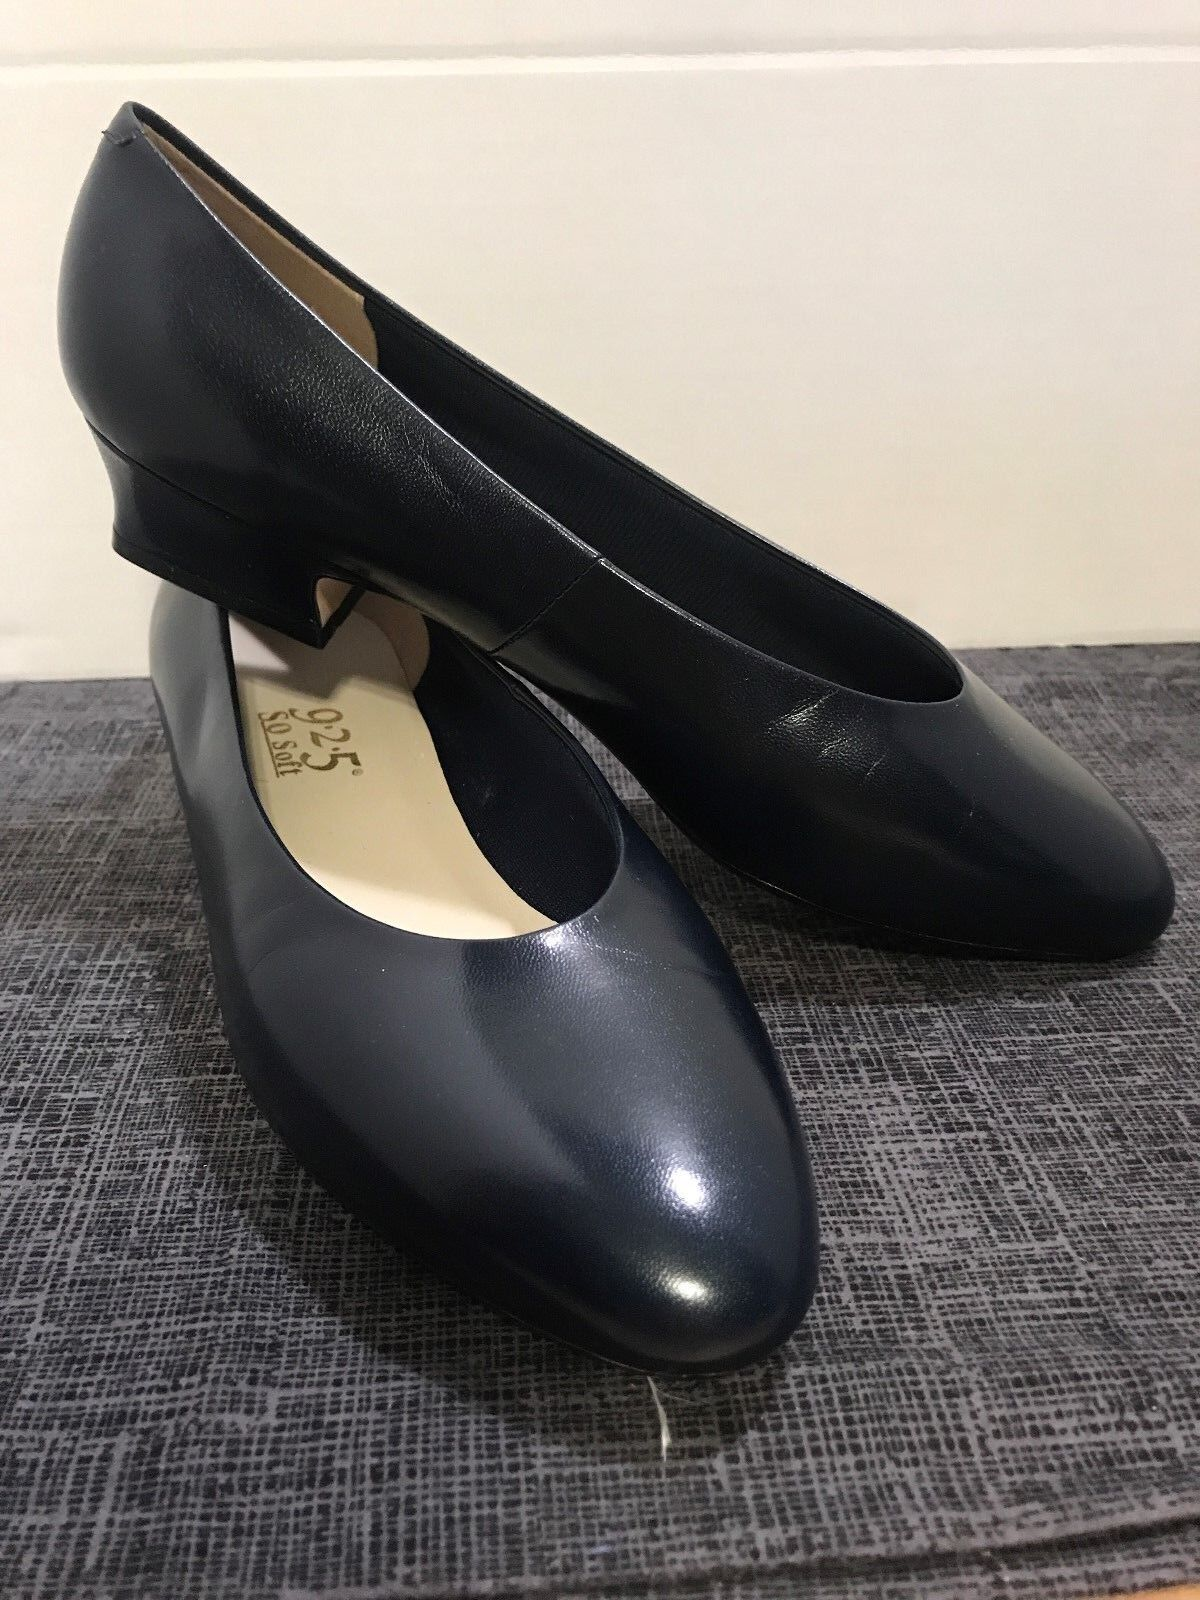 New 9 2 5 So Soft navy bluee leather classic pumps size 8 Wide